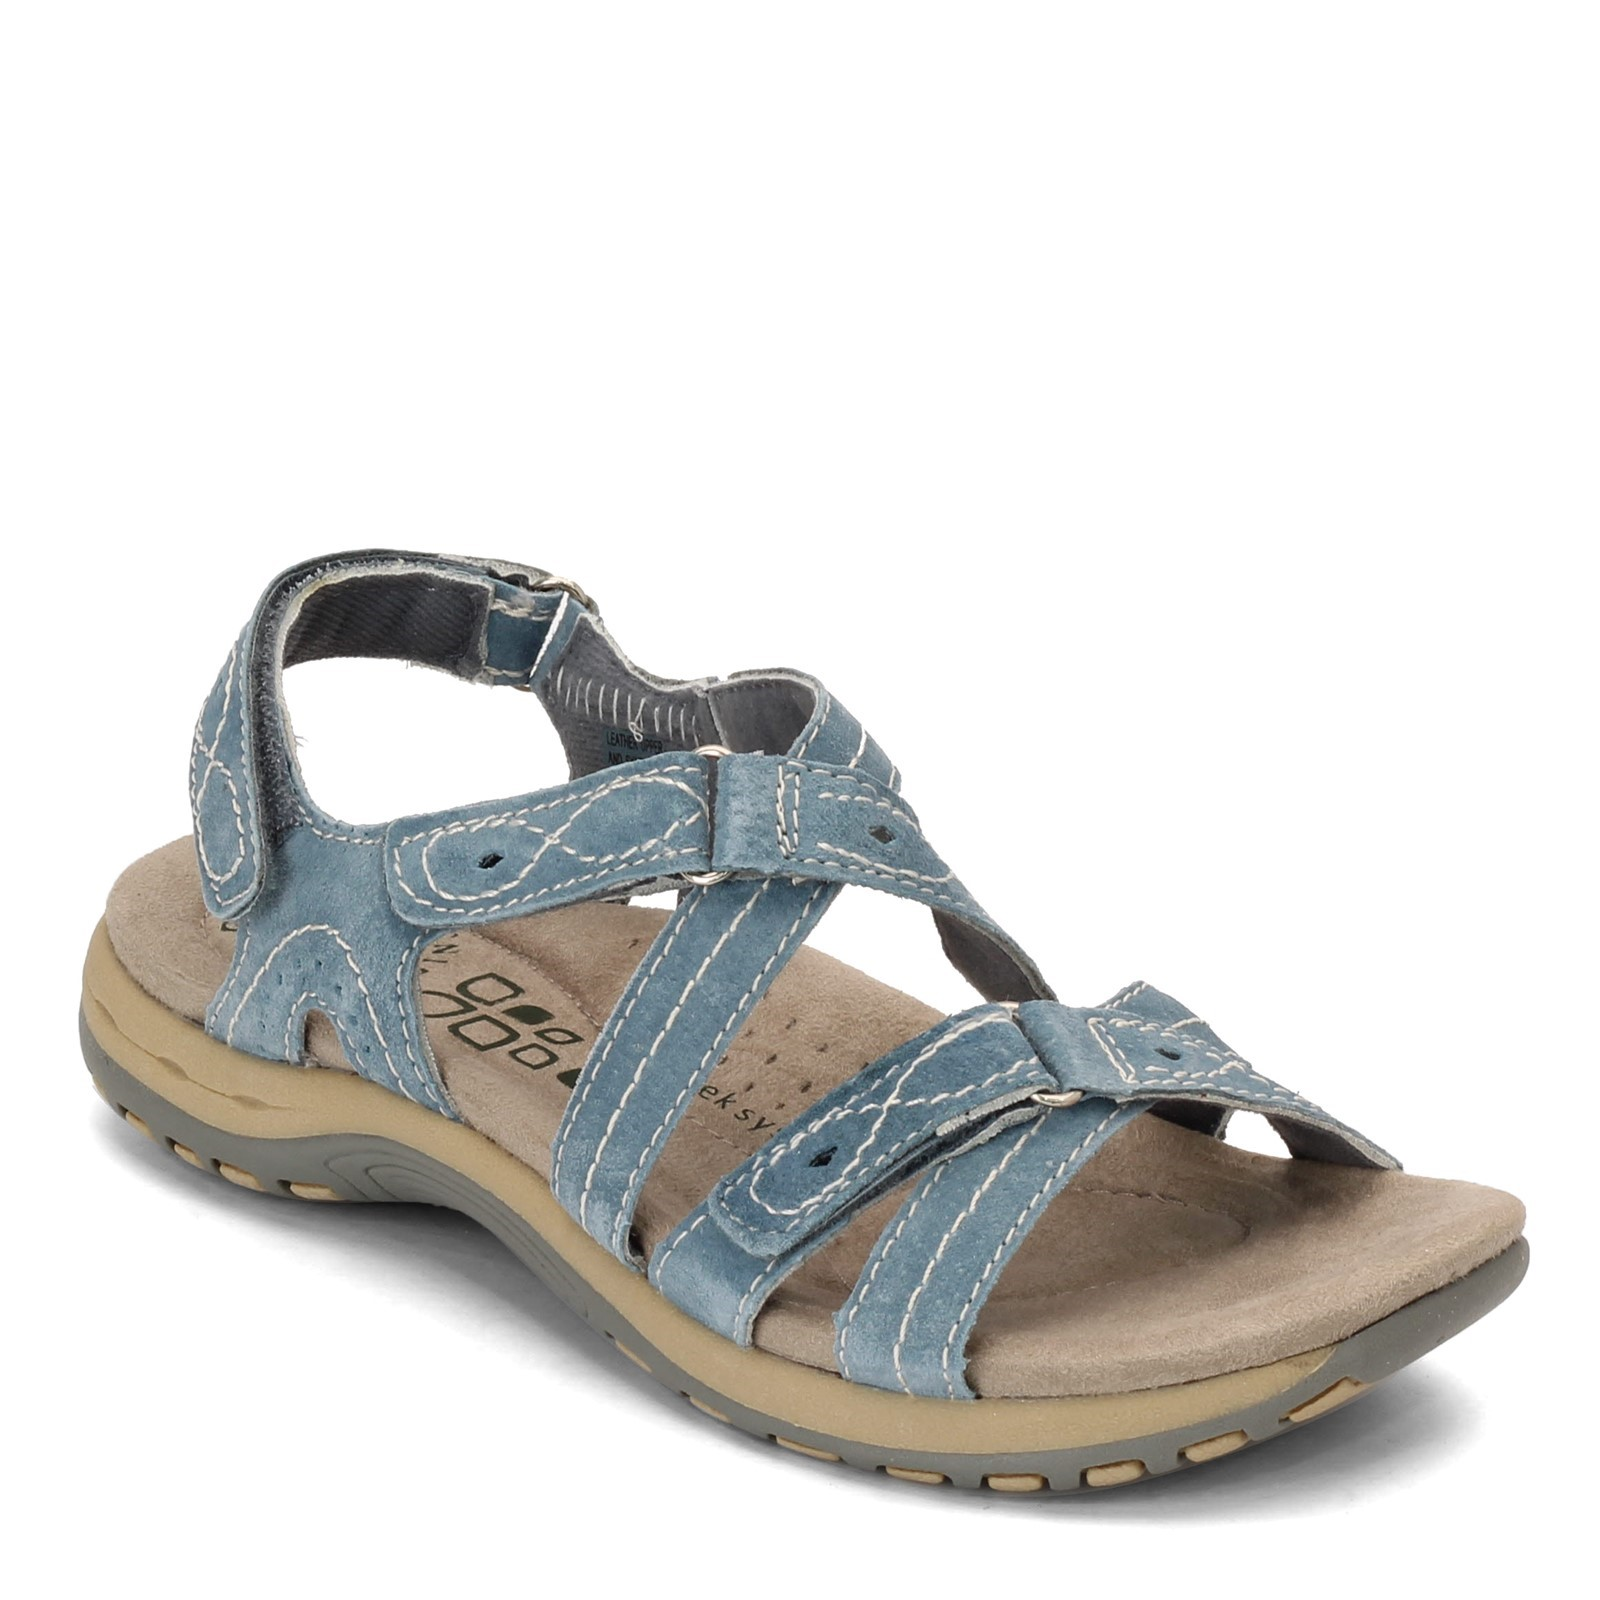 Women's Earth Origins, Shane Sandals